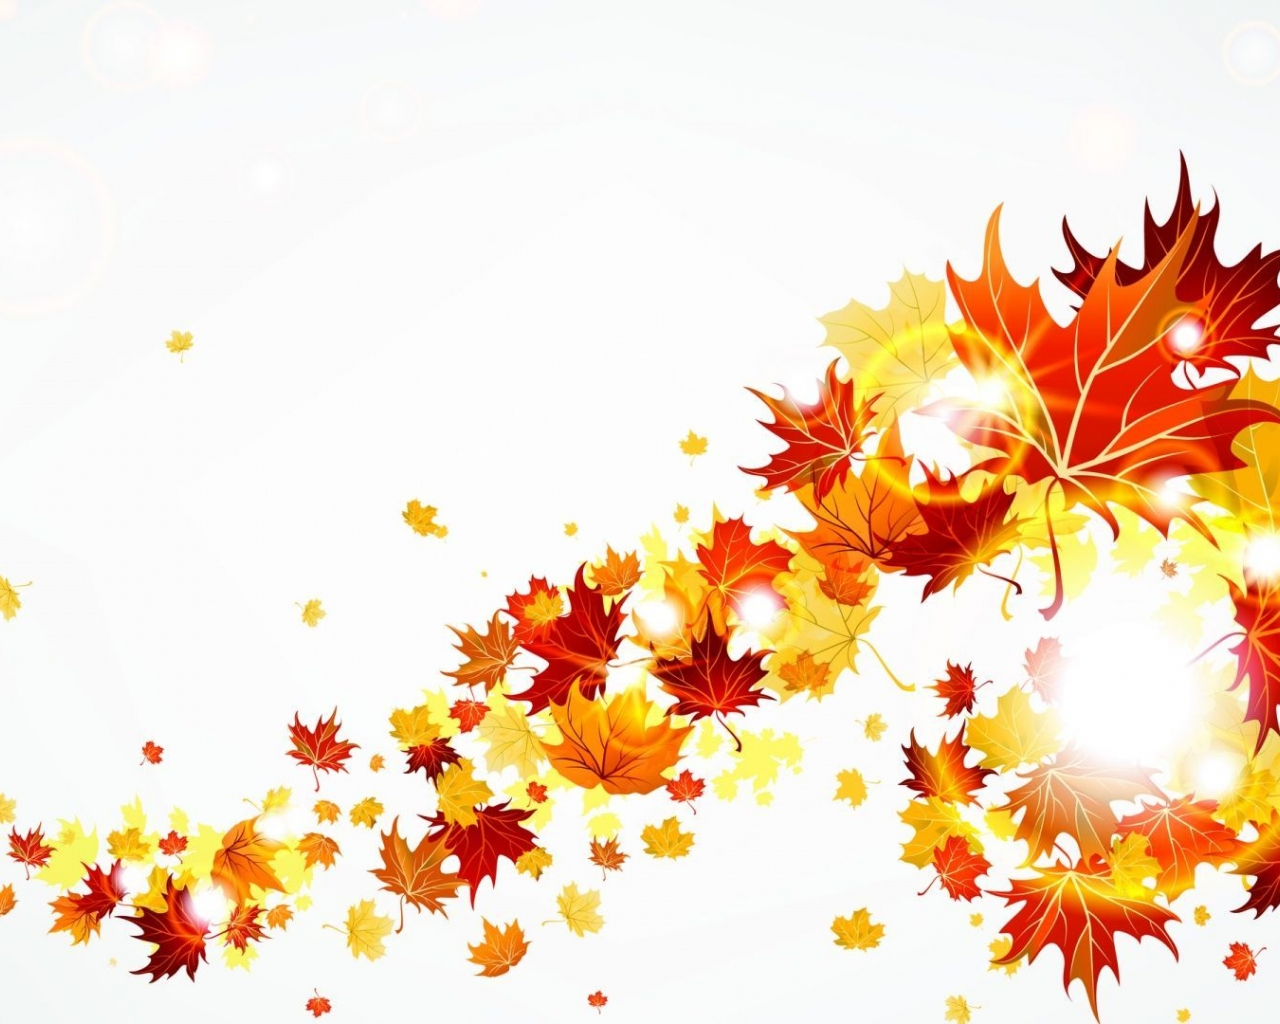 Free download 50 Autumn Leaves Clip Art Wallpapers Download.